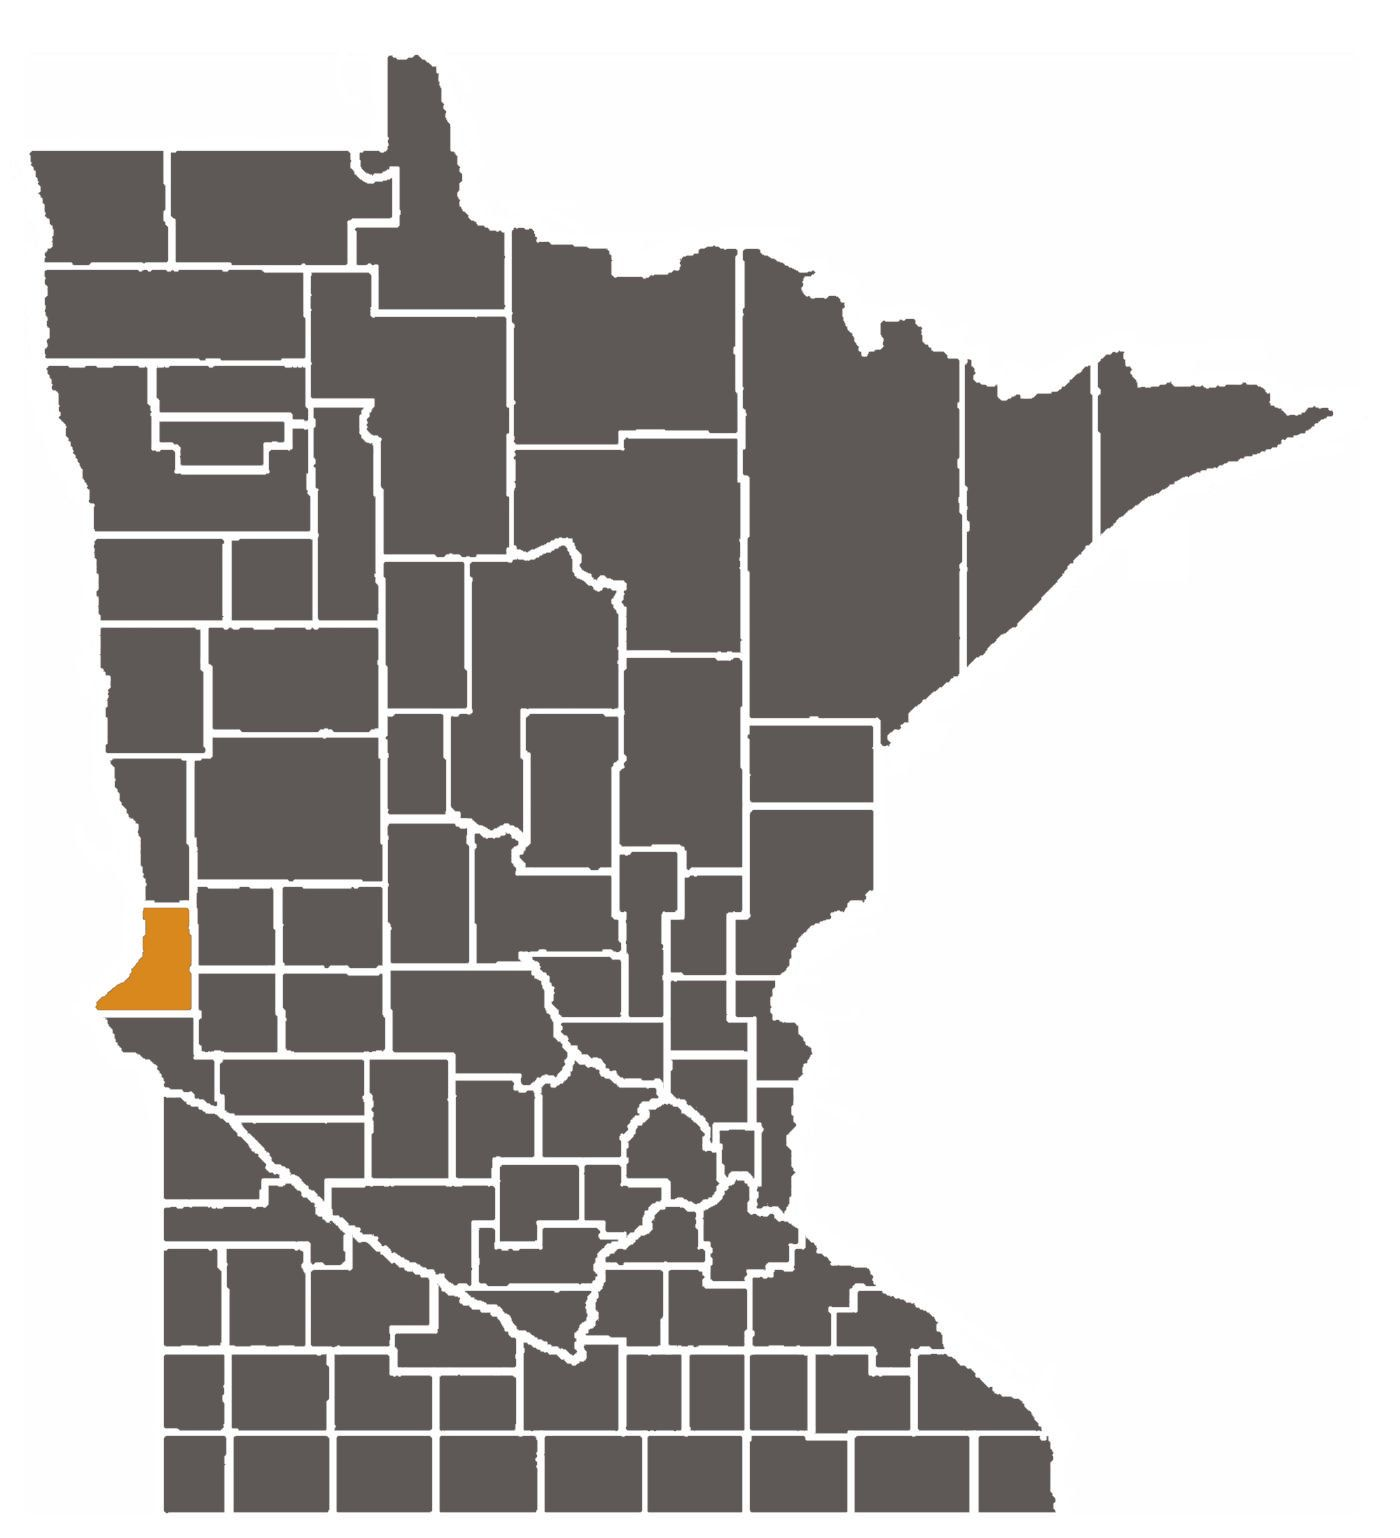 Minnesota map with Traverse County highlighted.